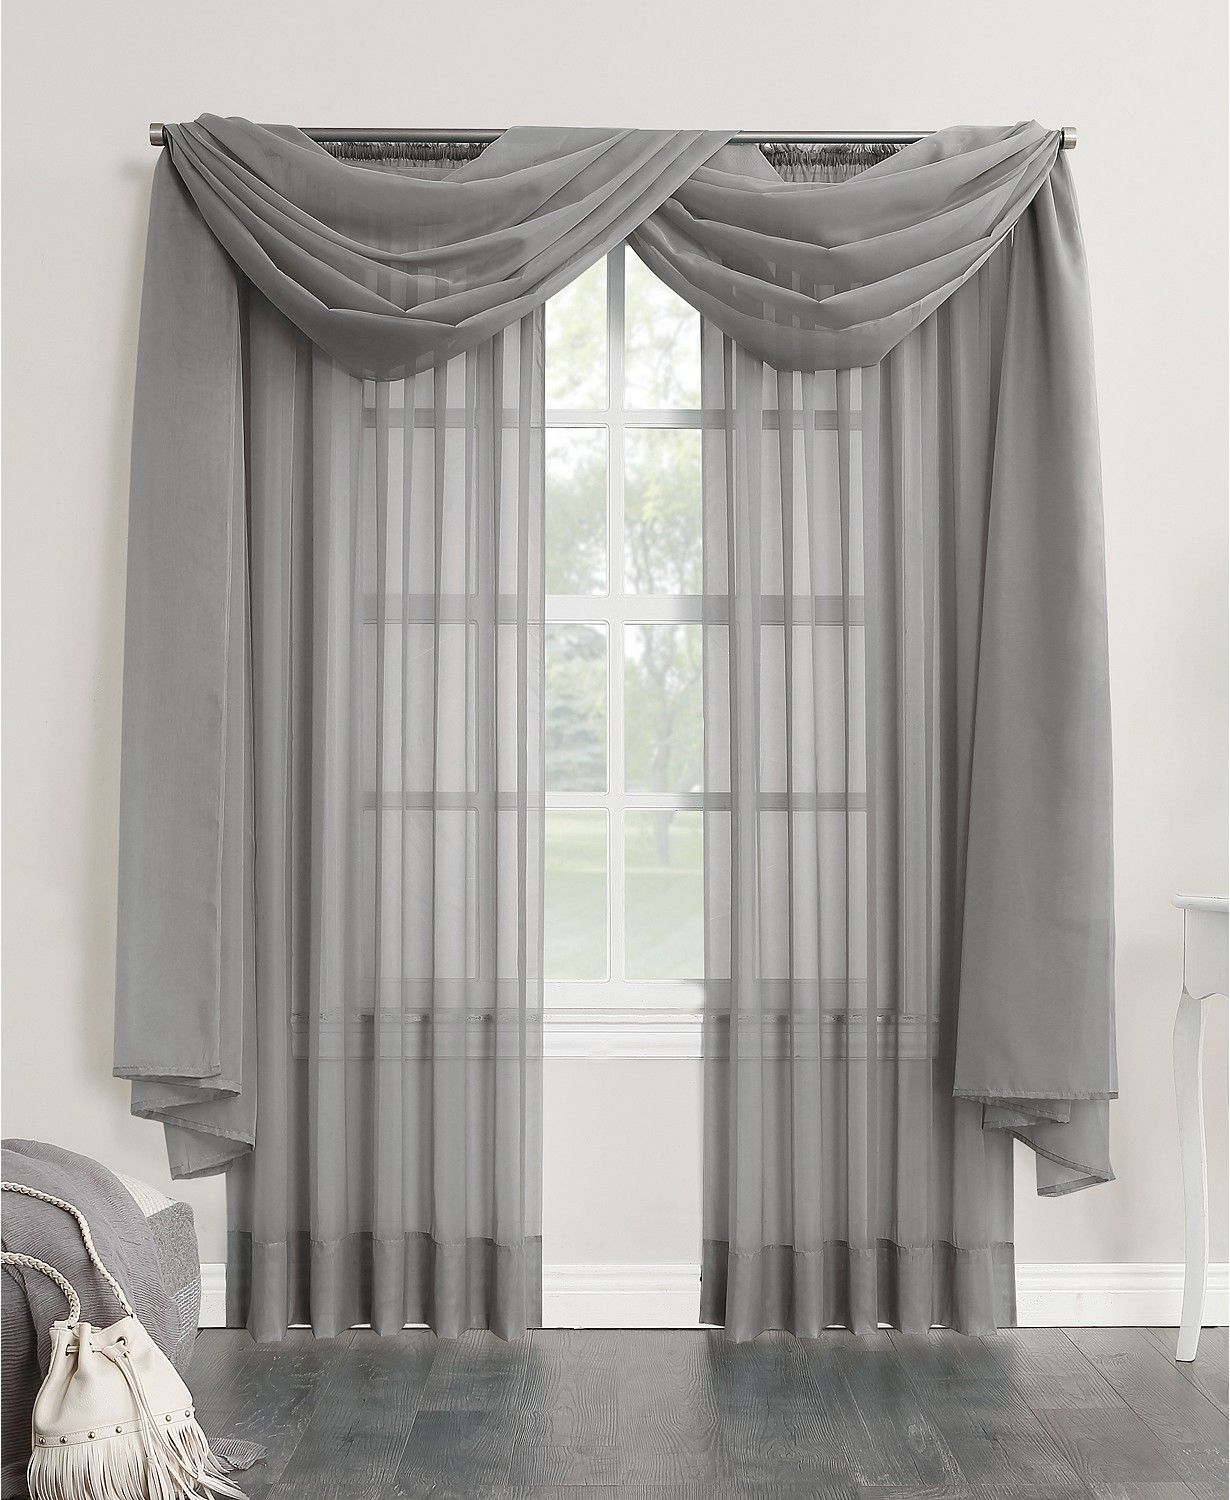 No 918 Sheer Voile Rod Pocket Curtain Panel 216 Window Curtains Living Room Curtain Styles Living Room Decor Curtains Sheer curtain ideas for living room